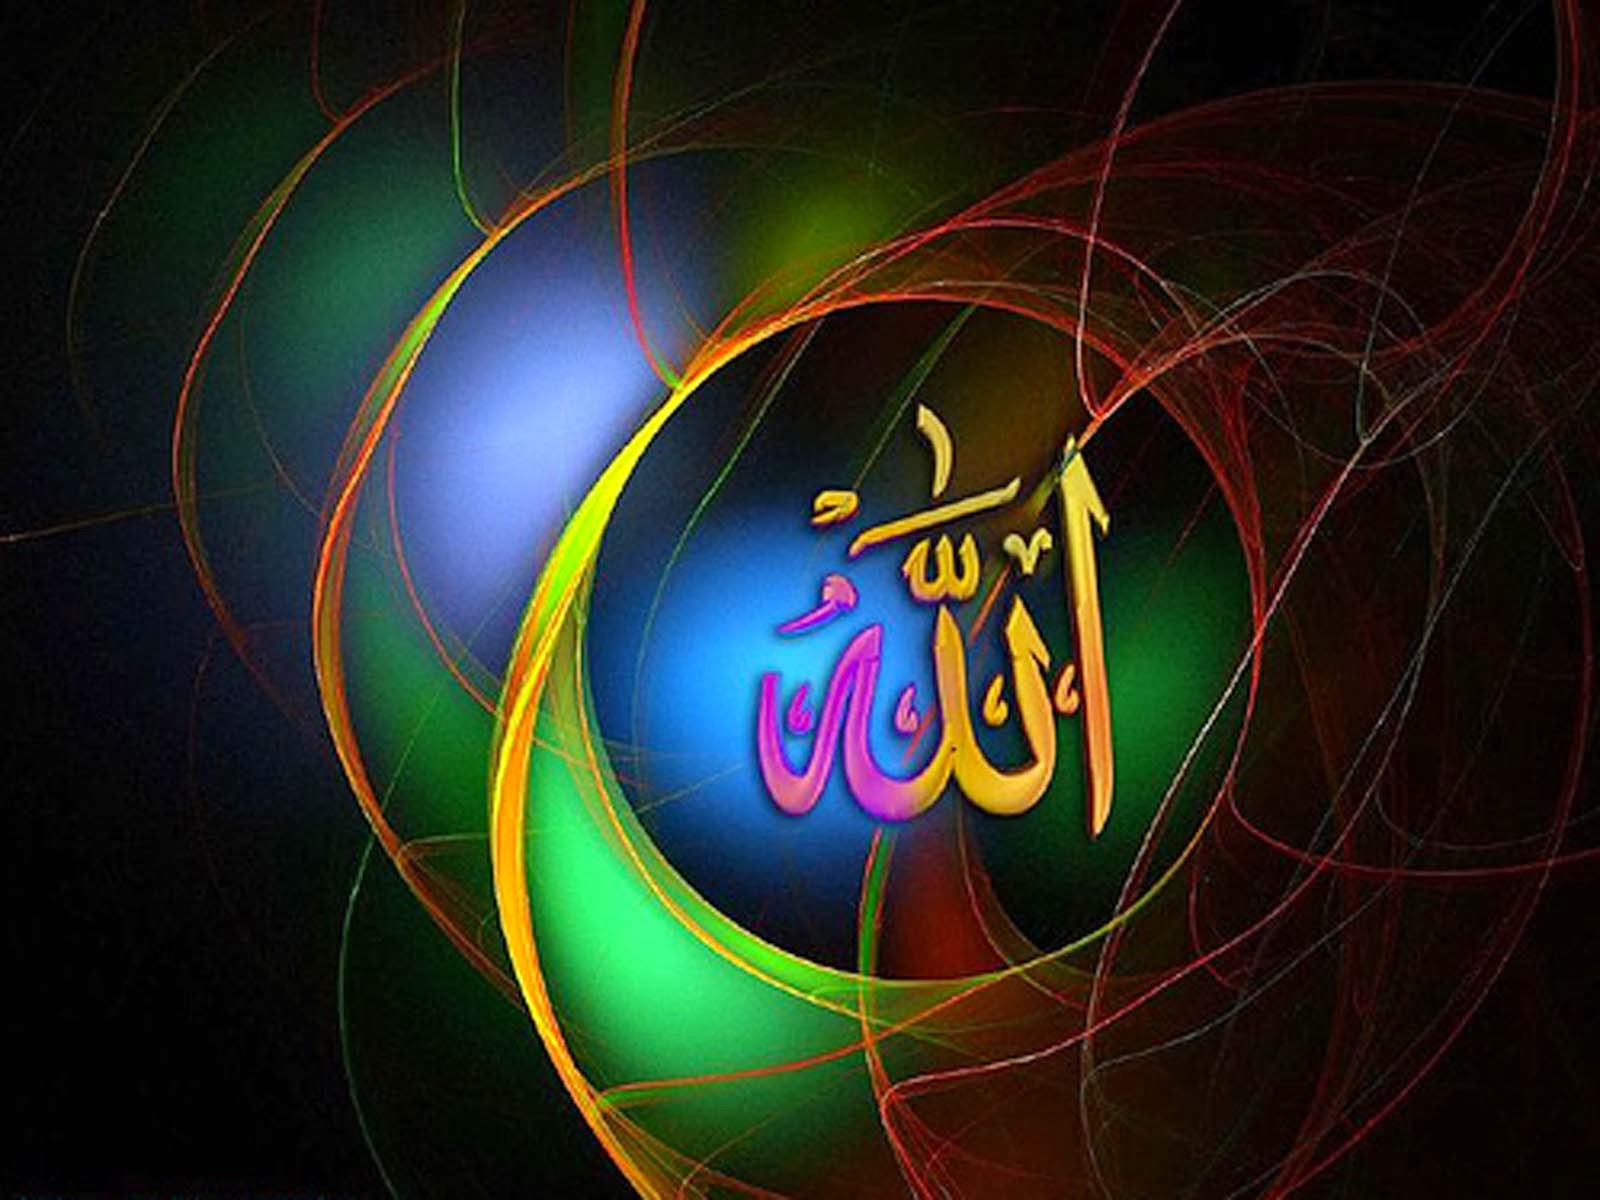 Allah name latest hd wallpapers free islamic wallpapers download - Name wallpapers free download ...